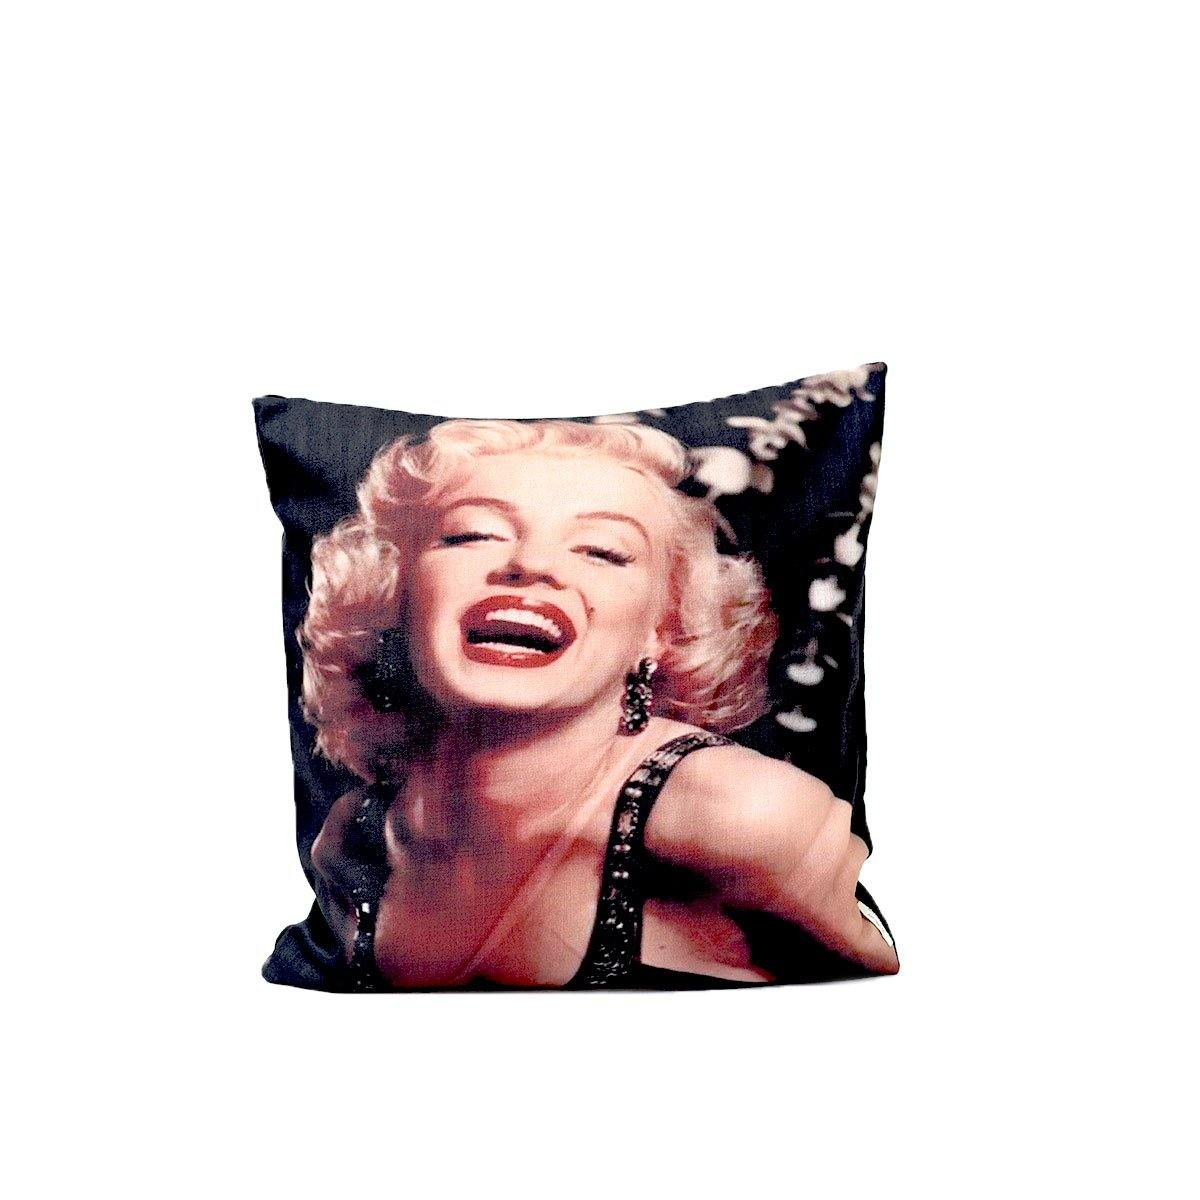 Marilyn Monroe digital cushion